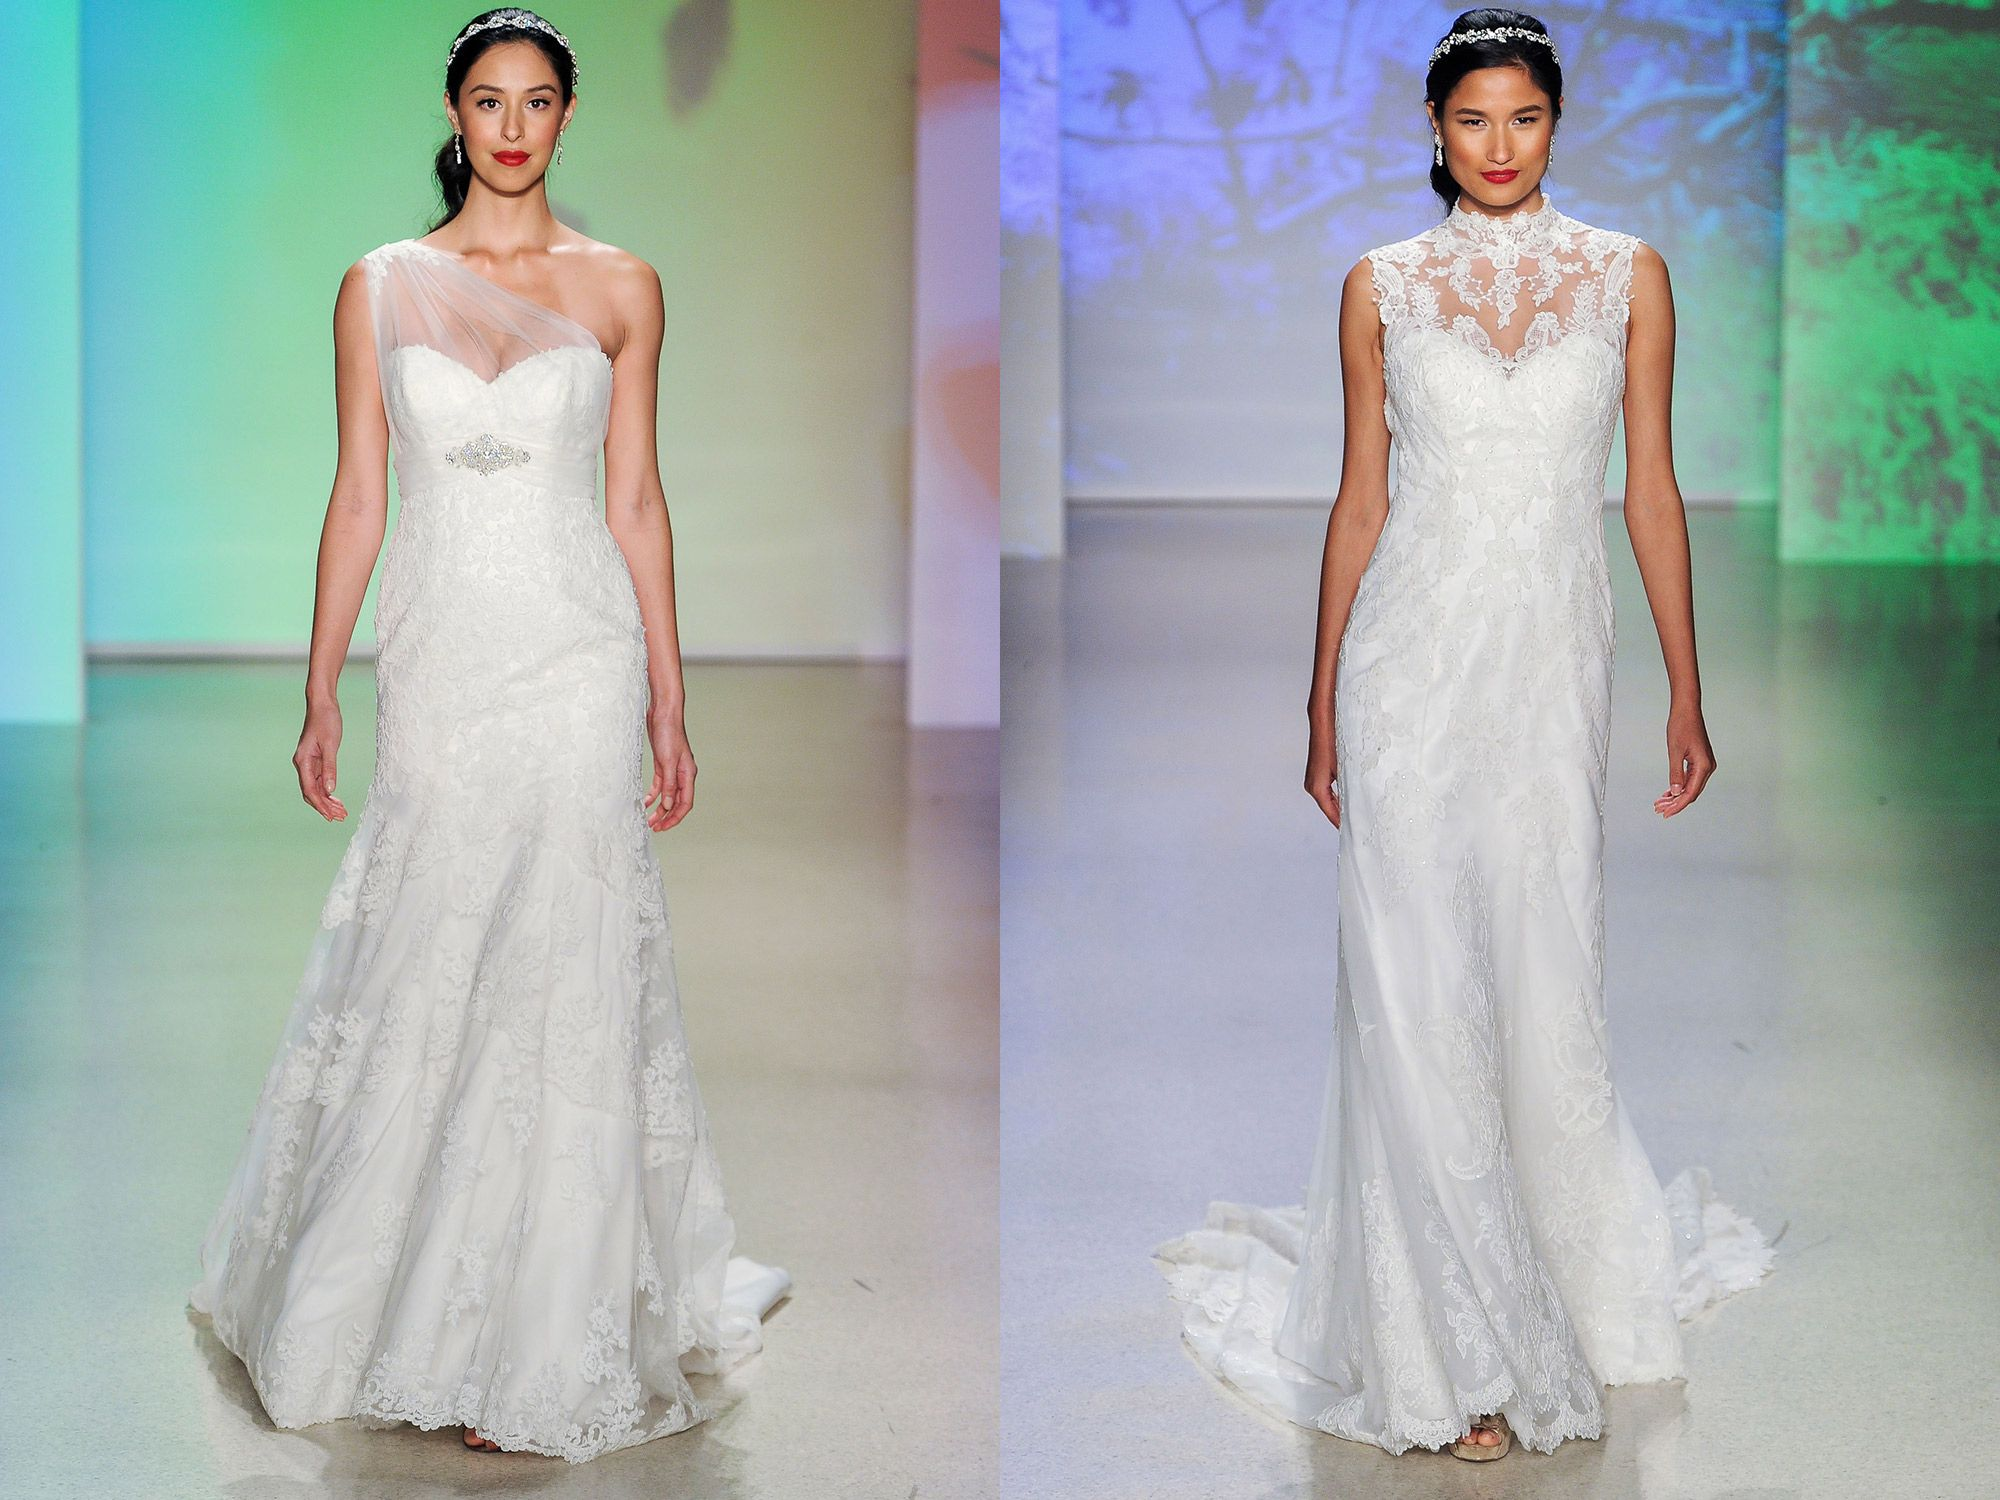 The Wedding Dress Collection That Will Make You Look Like A Disney ...